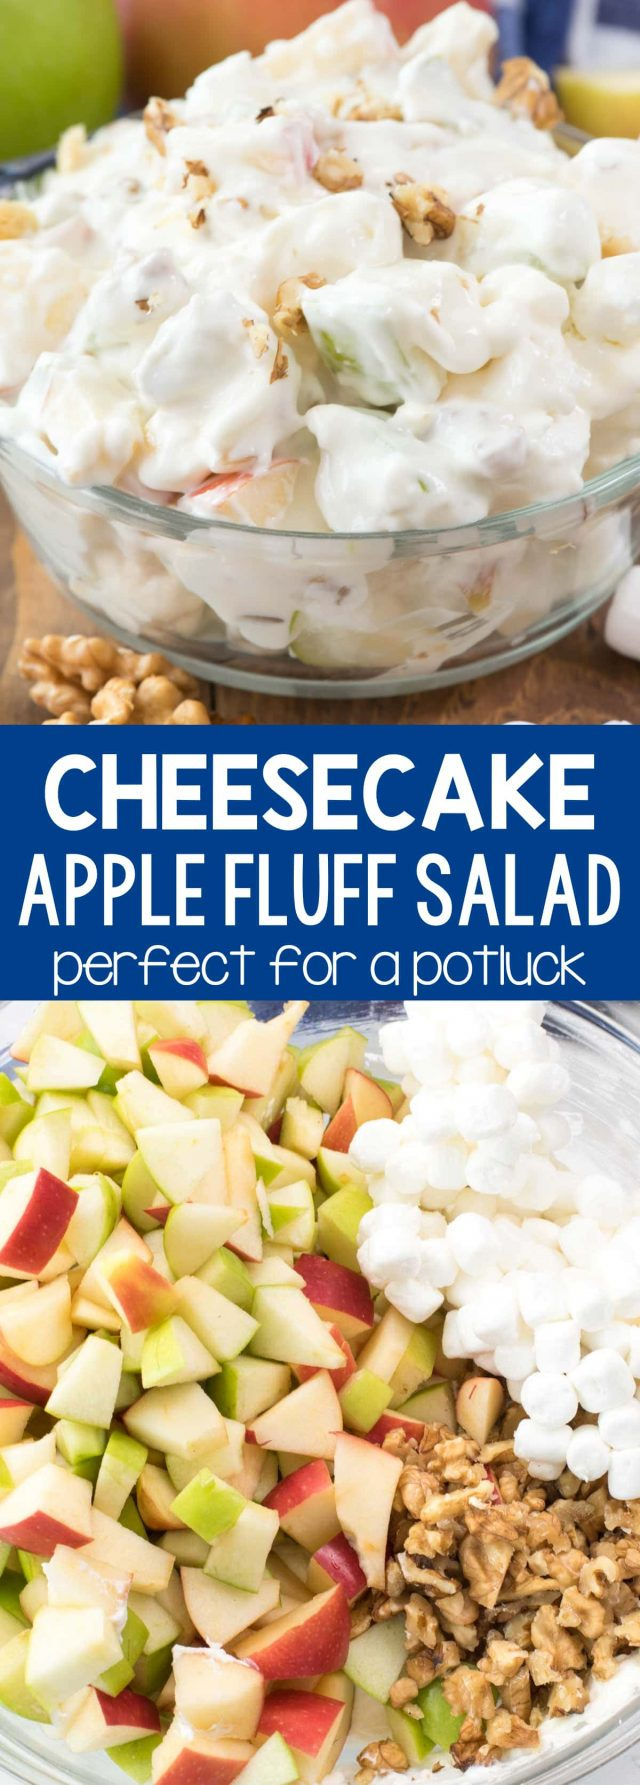 Cheesecake Apple Salad - this easy no bake dessert salad recipe combines apple salad and cheesecake fluff! Apples are mixed with marshmallows, nuts, and a no-bake cheesecake for the perfect party side dish.